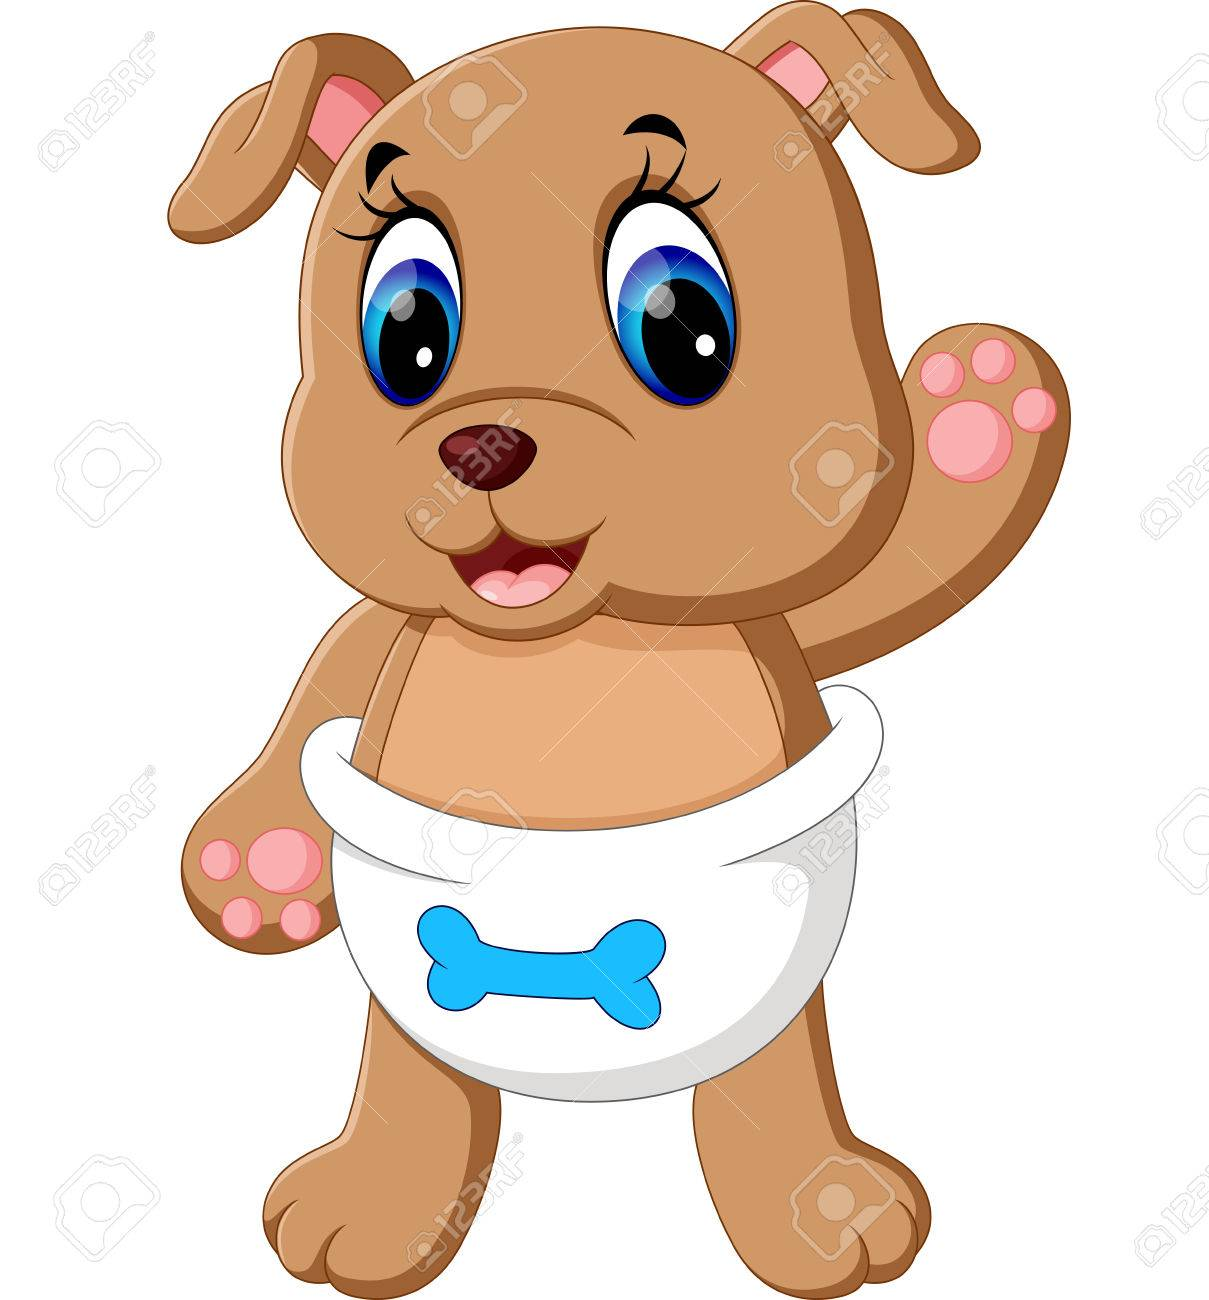 Cute Baby Dog Cartoon Stock Photo Picture And Royalty Free Image Image 60915702